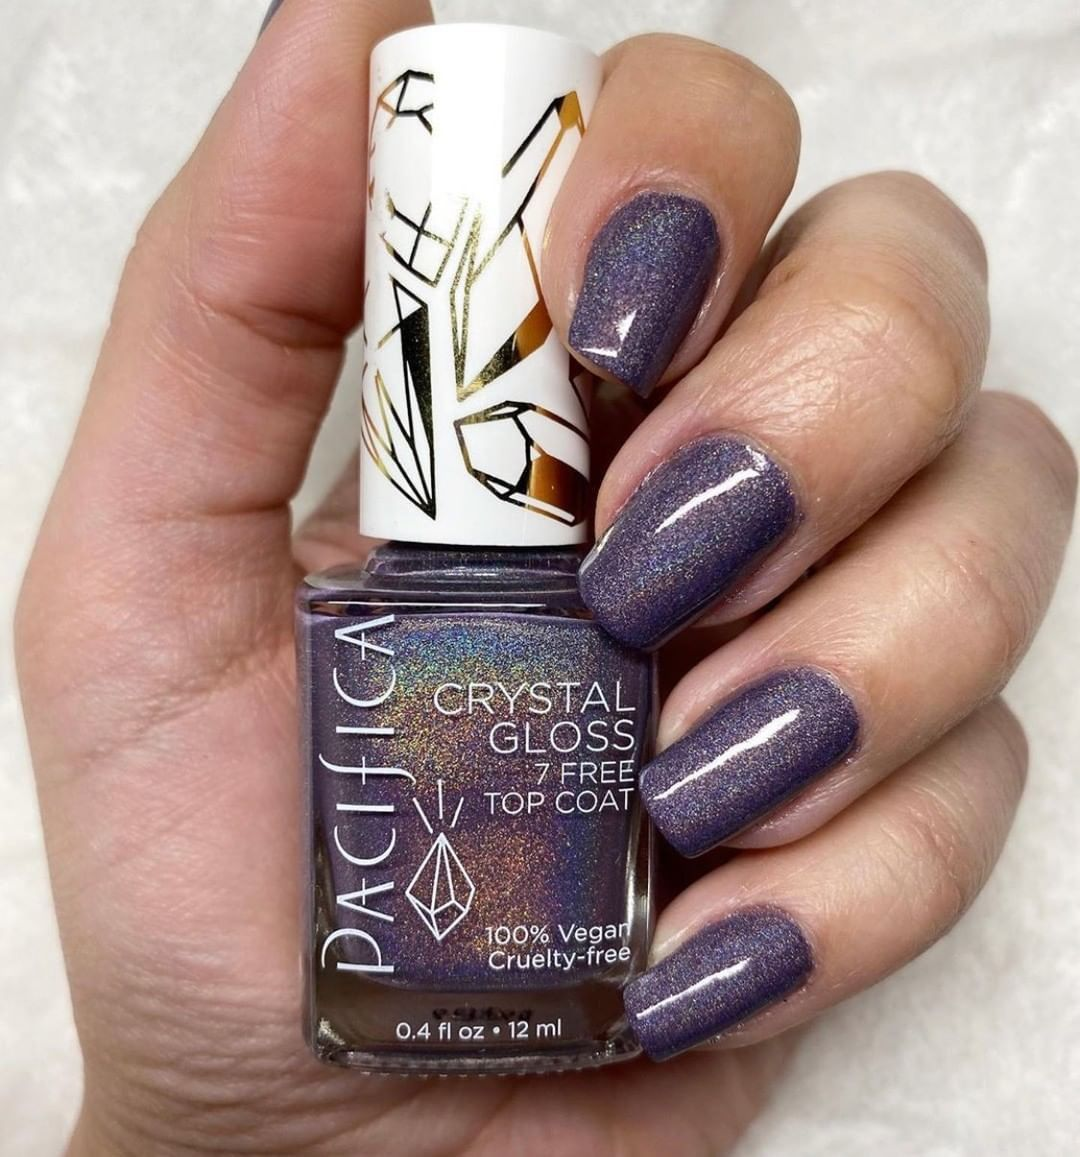 Pin by Ashley on Nails in 2020 Cruelty free nail polish